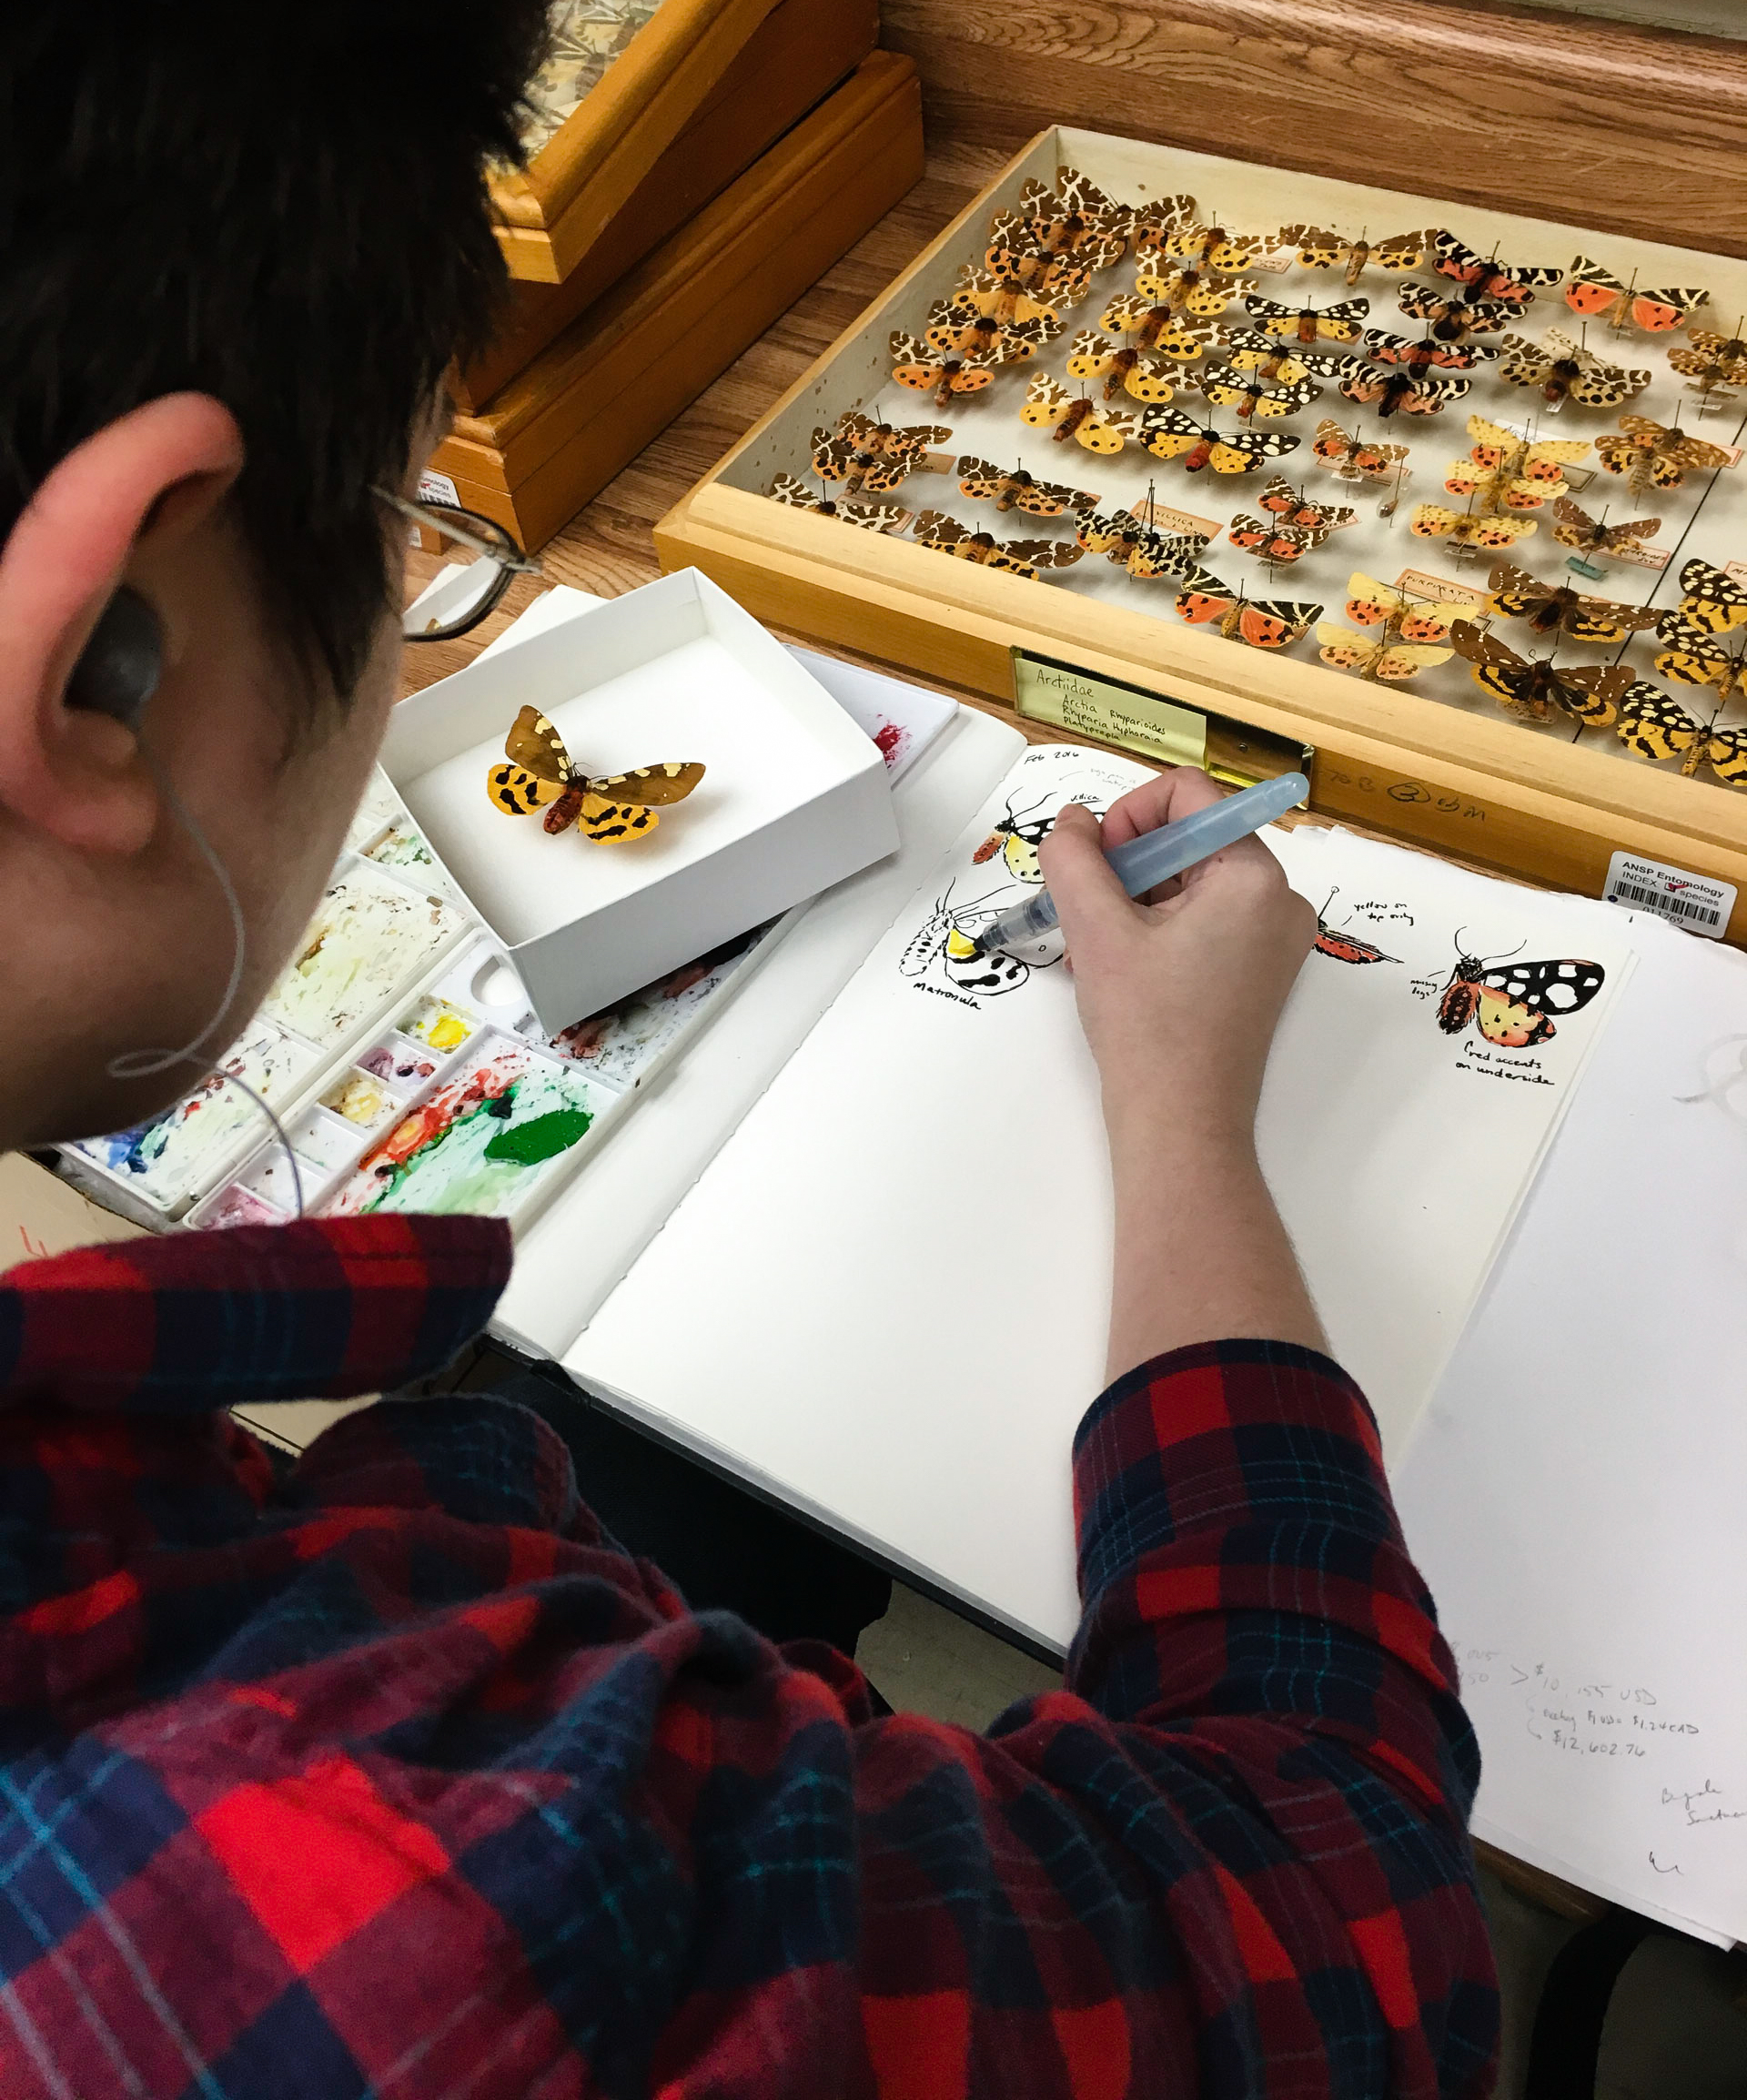 Not only do scientists use the collection. Artists draw inspiration from the endless forms. Artist, Mary Capaldi, draws specimens from the collection in her notebook.